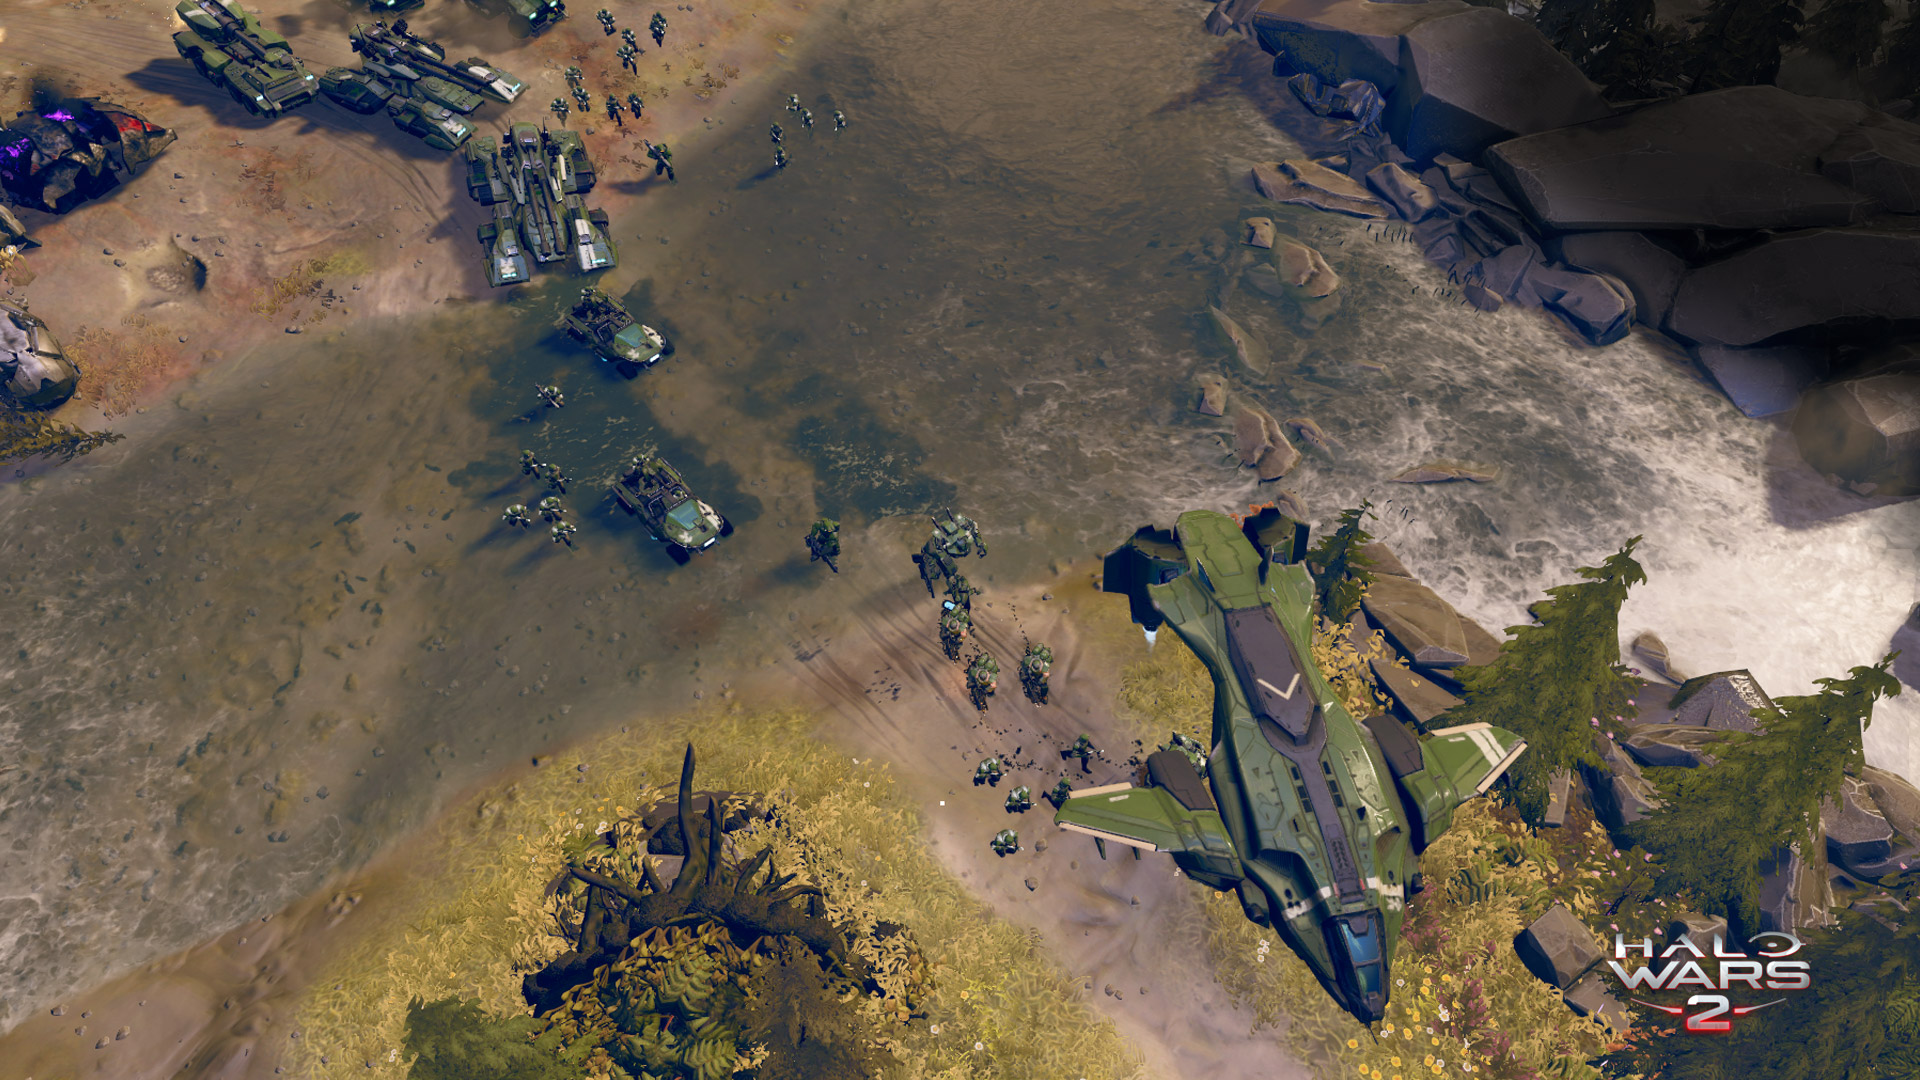 Halo Wars 2 Demo Available Now on Windows Store